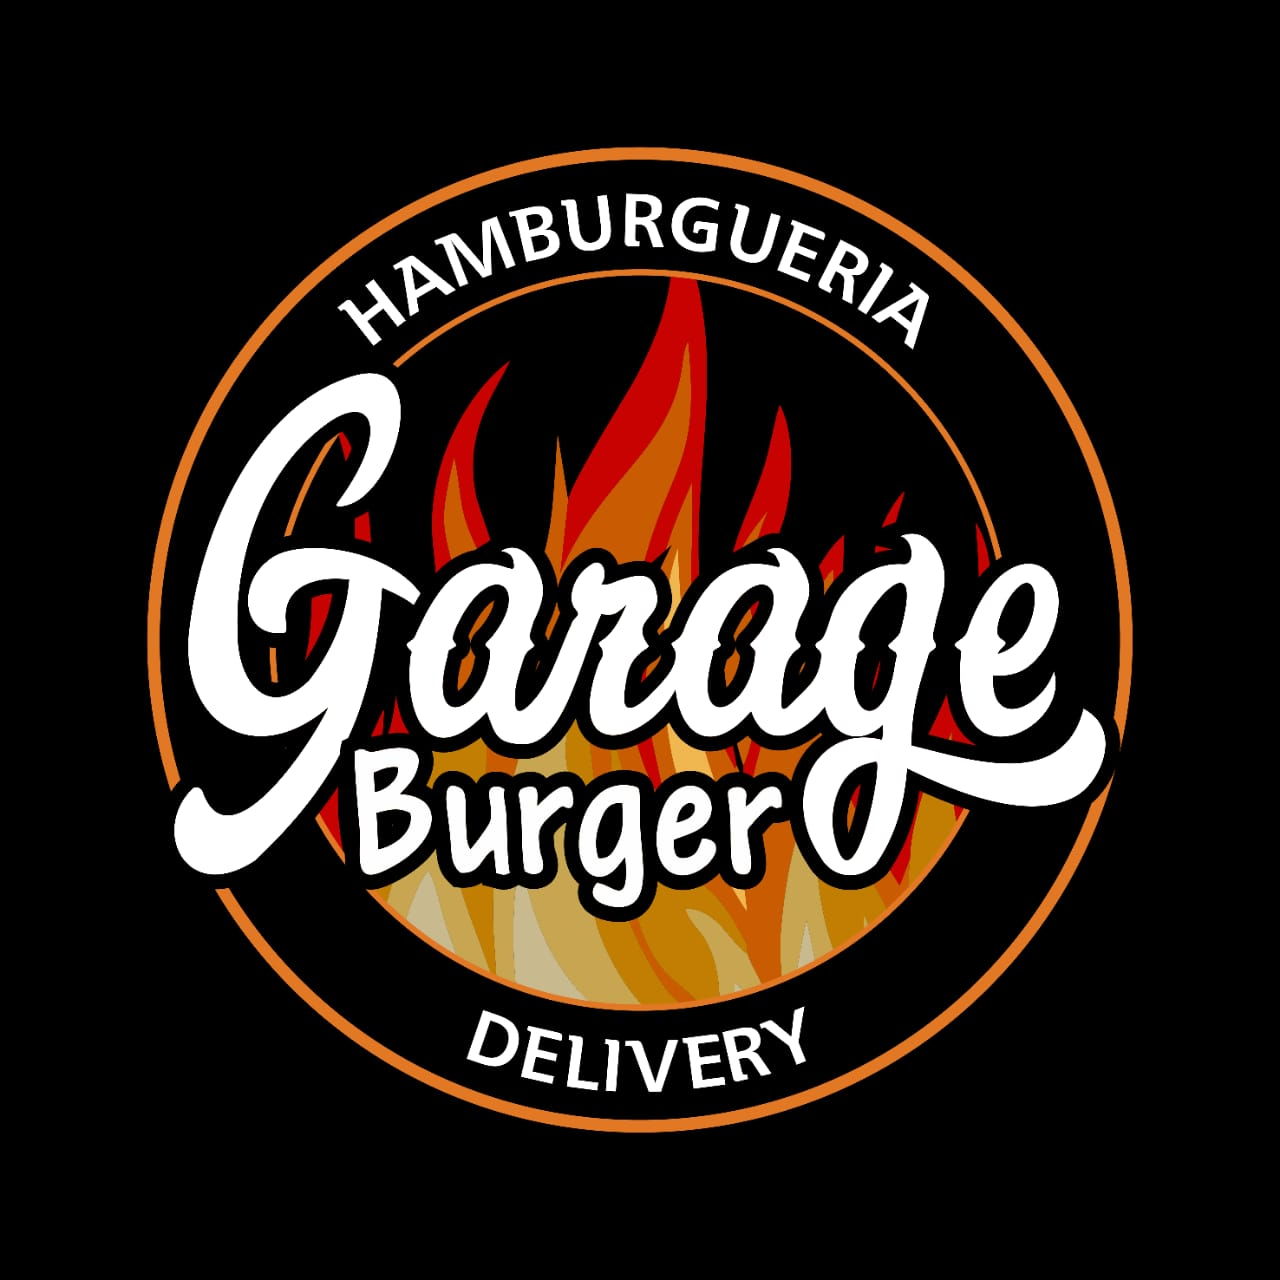 Logo-Restaurante Delivery - Garage burger